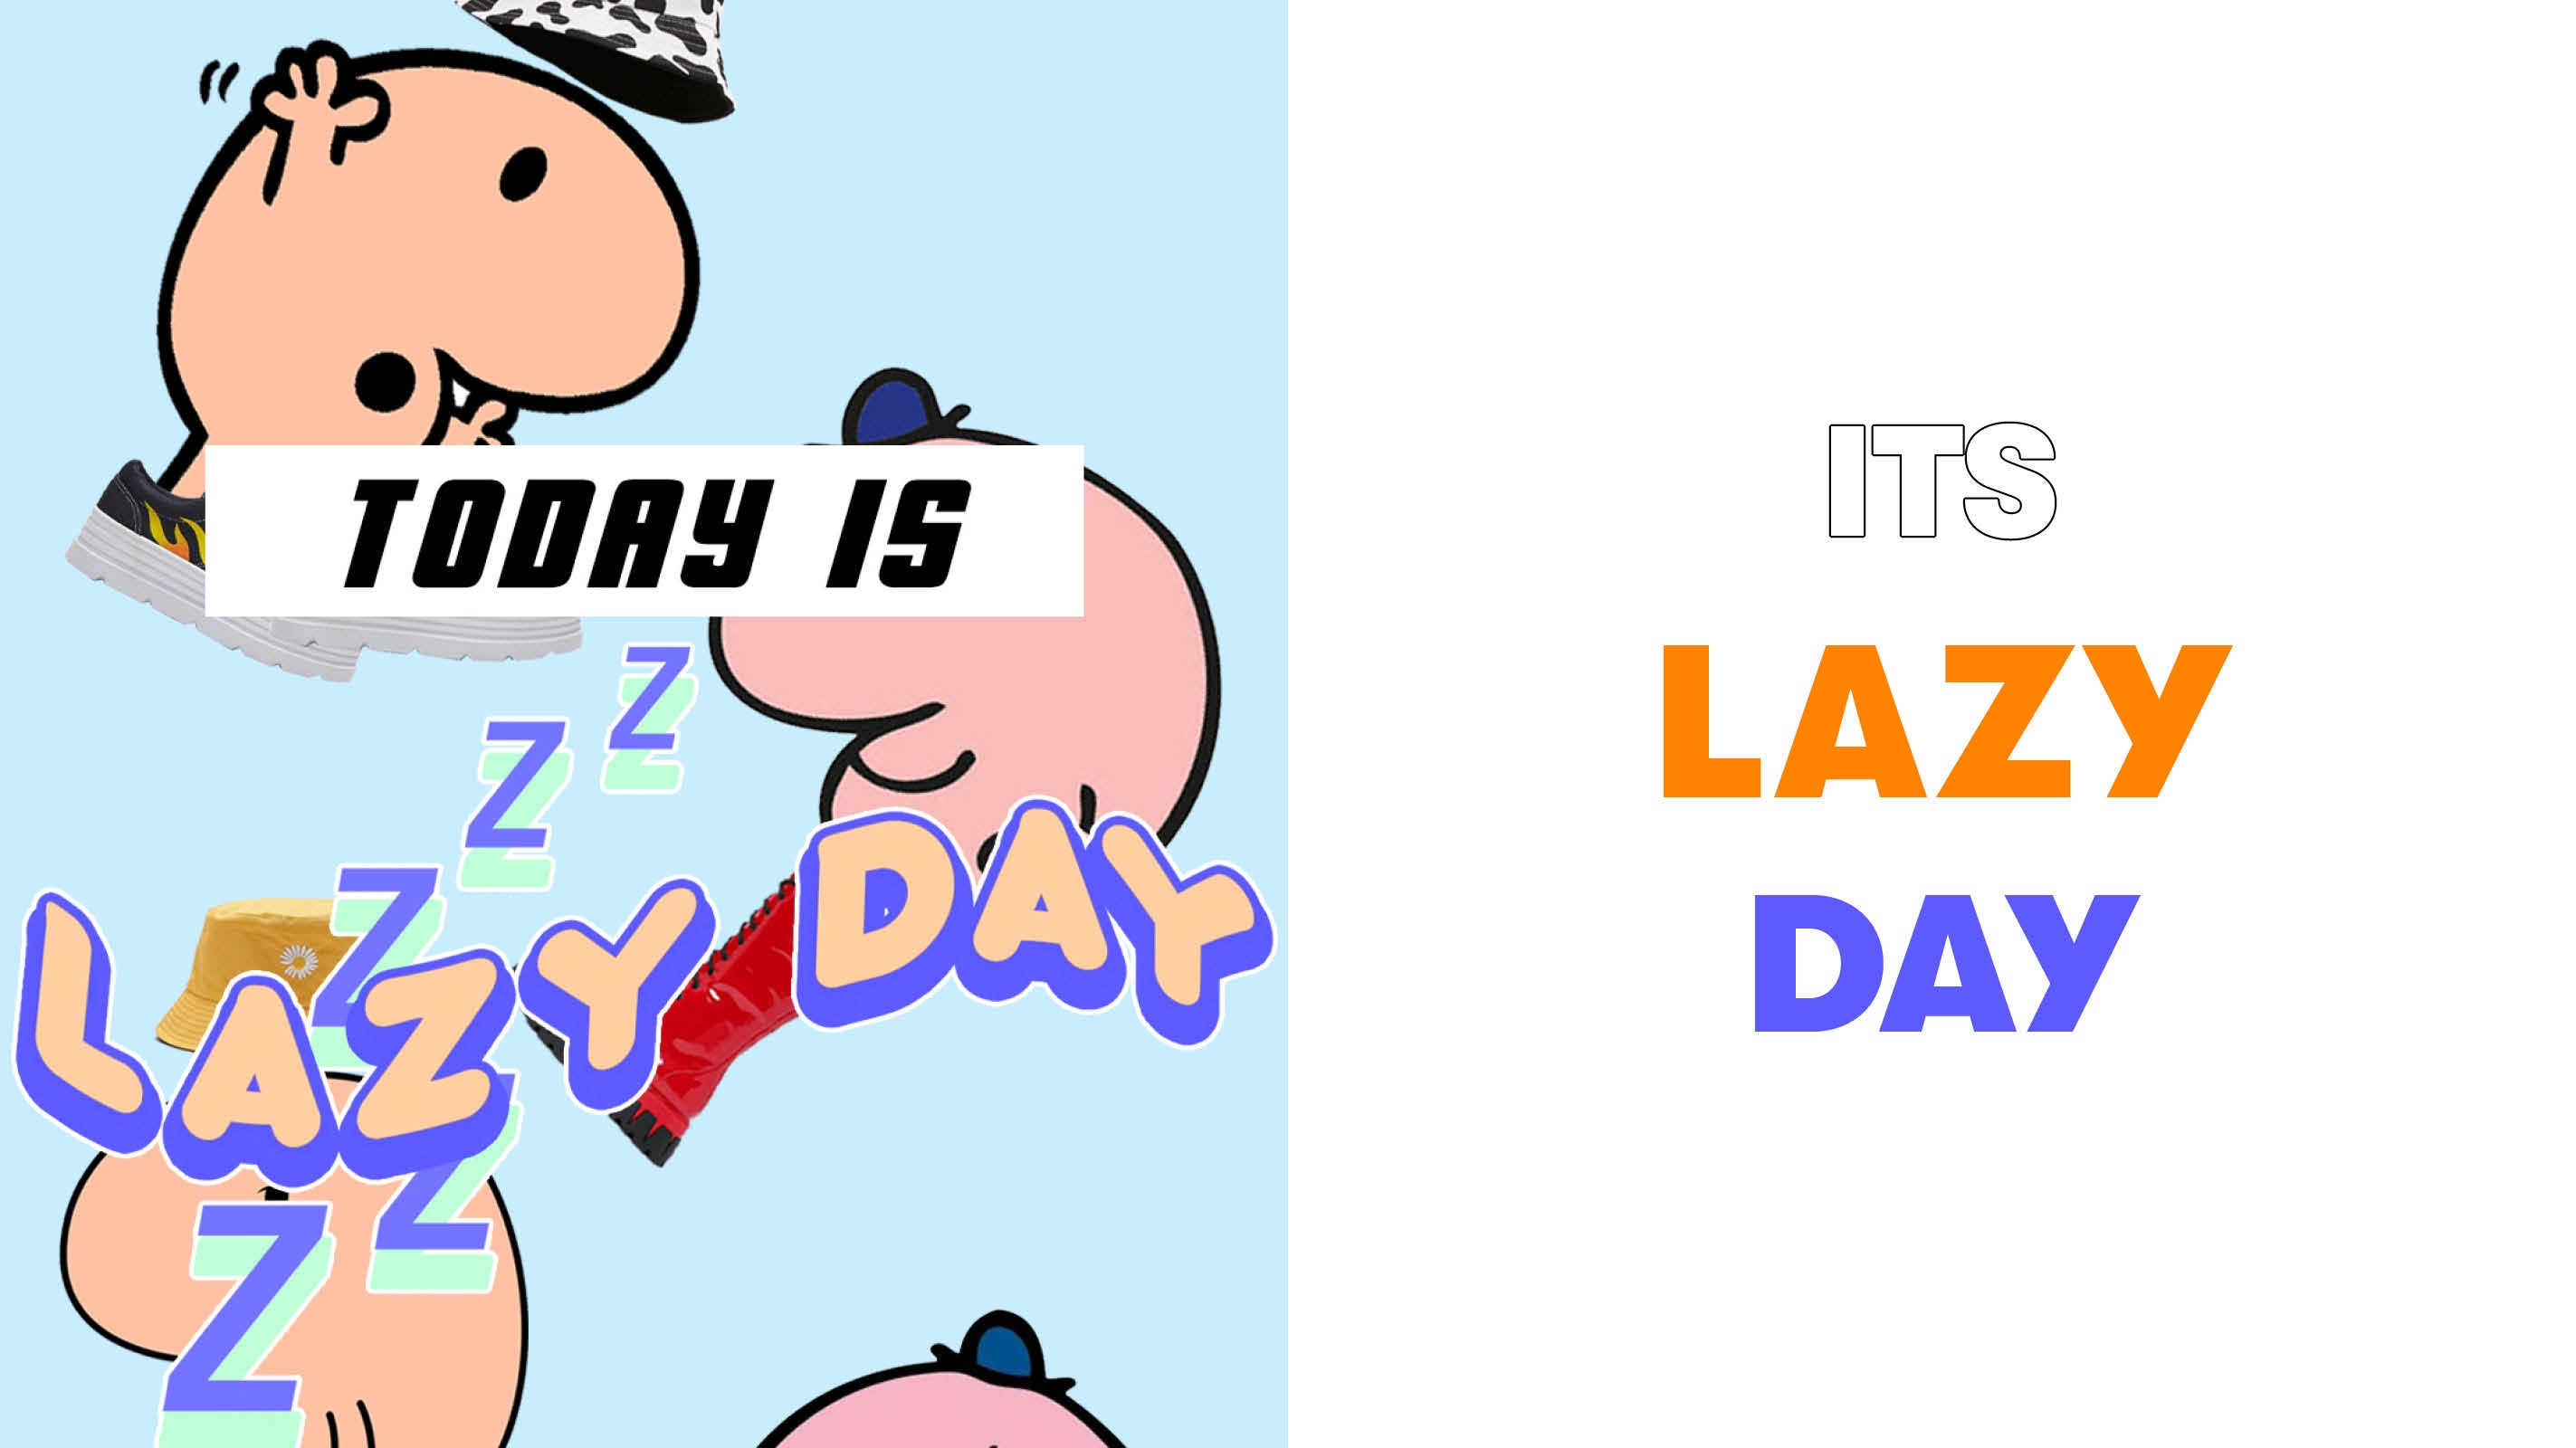 IT'S LAZY DAY